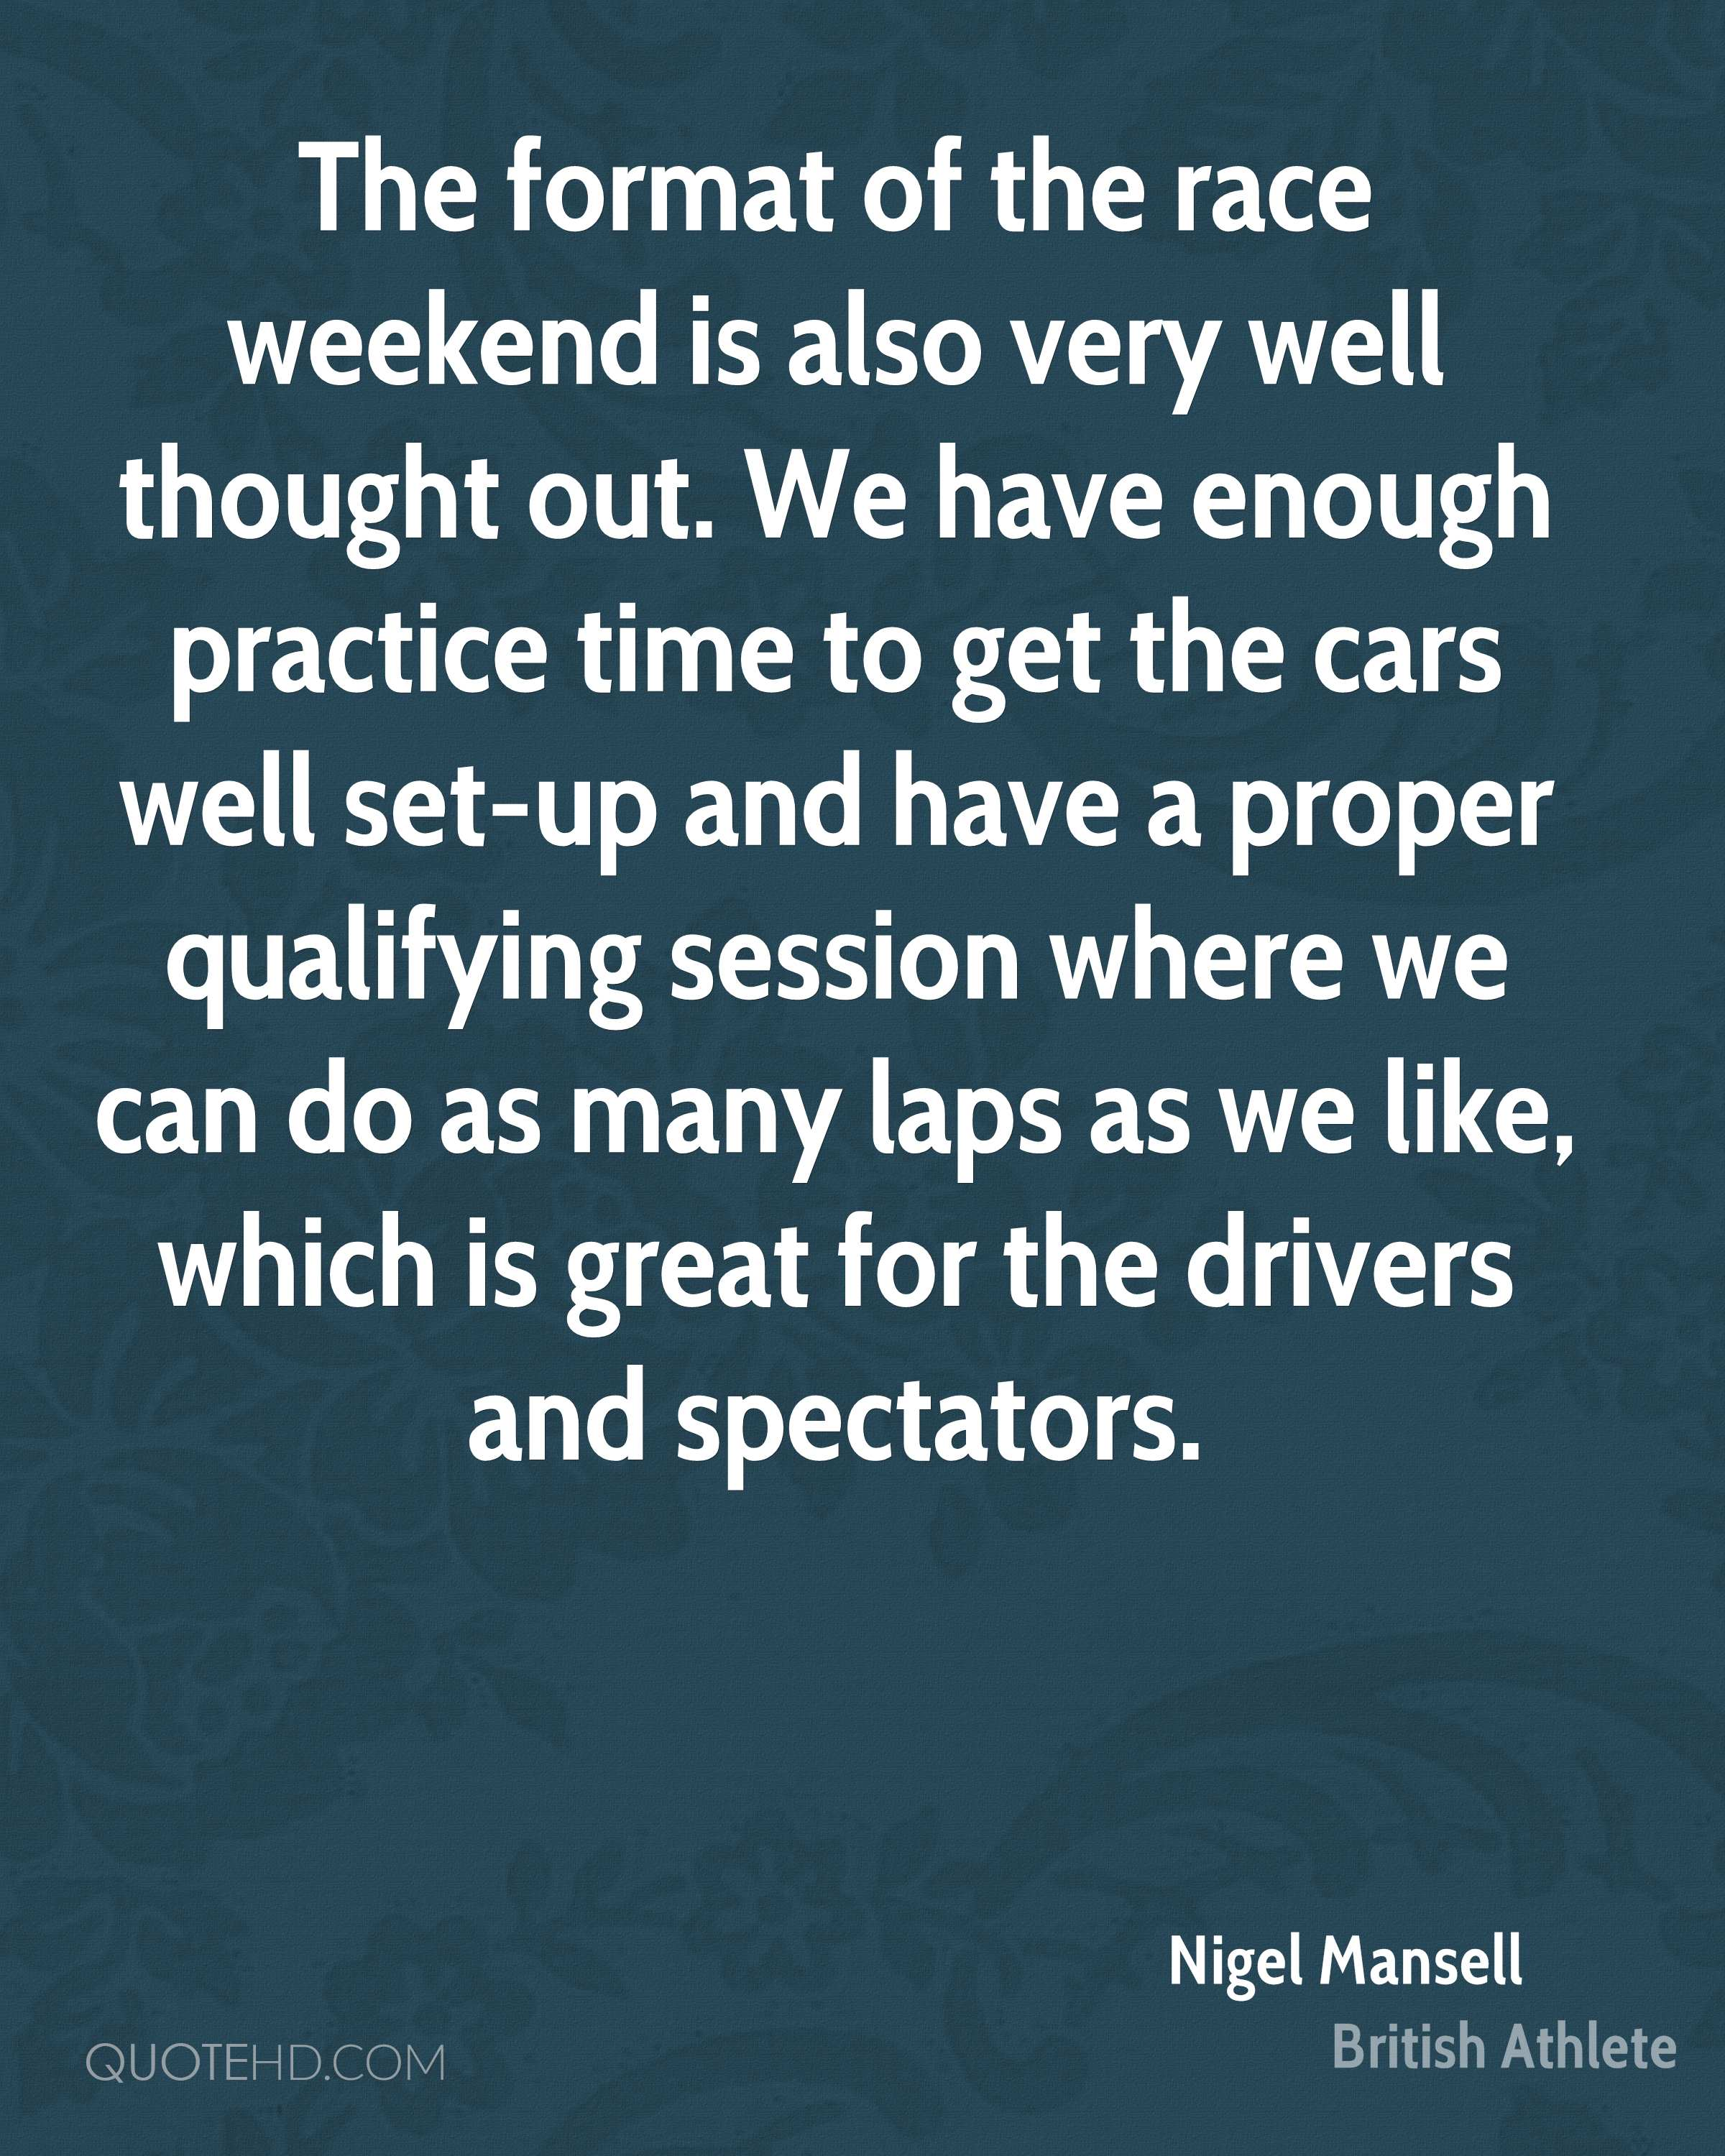 The format of the race weekend is also very well thought out. We have enough practice time to get the cars well set-up and have a proper qualifying session where we can do as many laps as we like, which is great for the drivers and spectators.